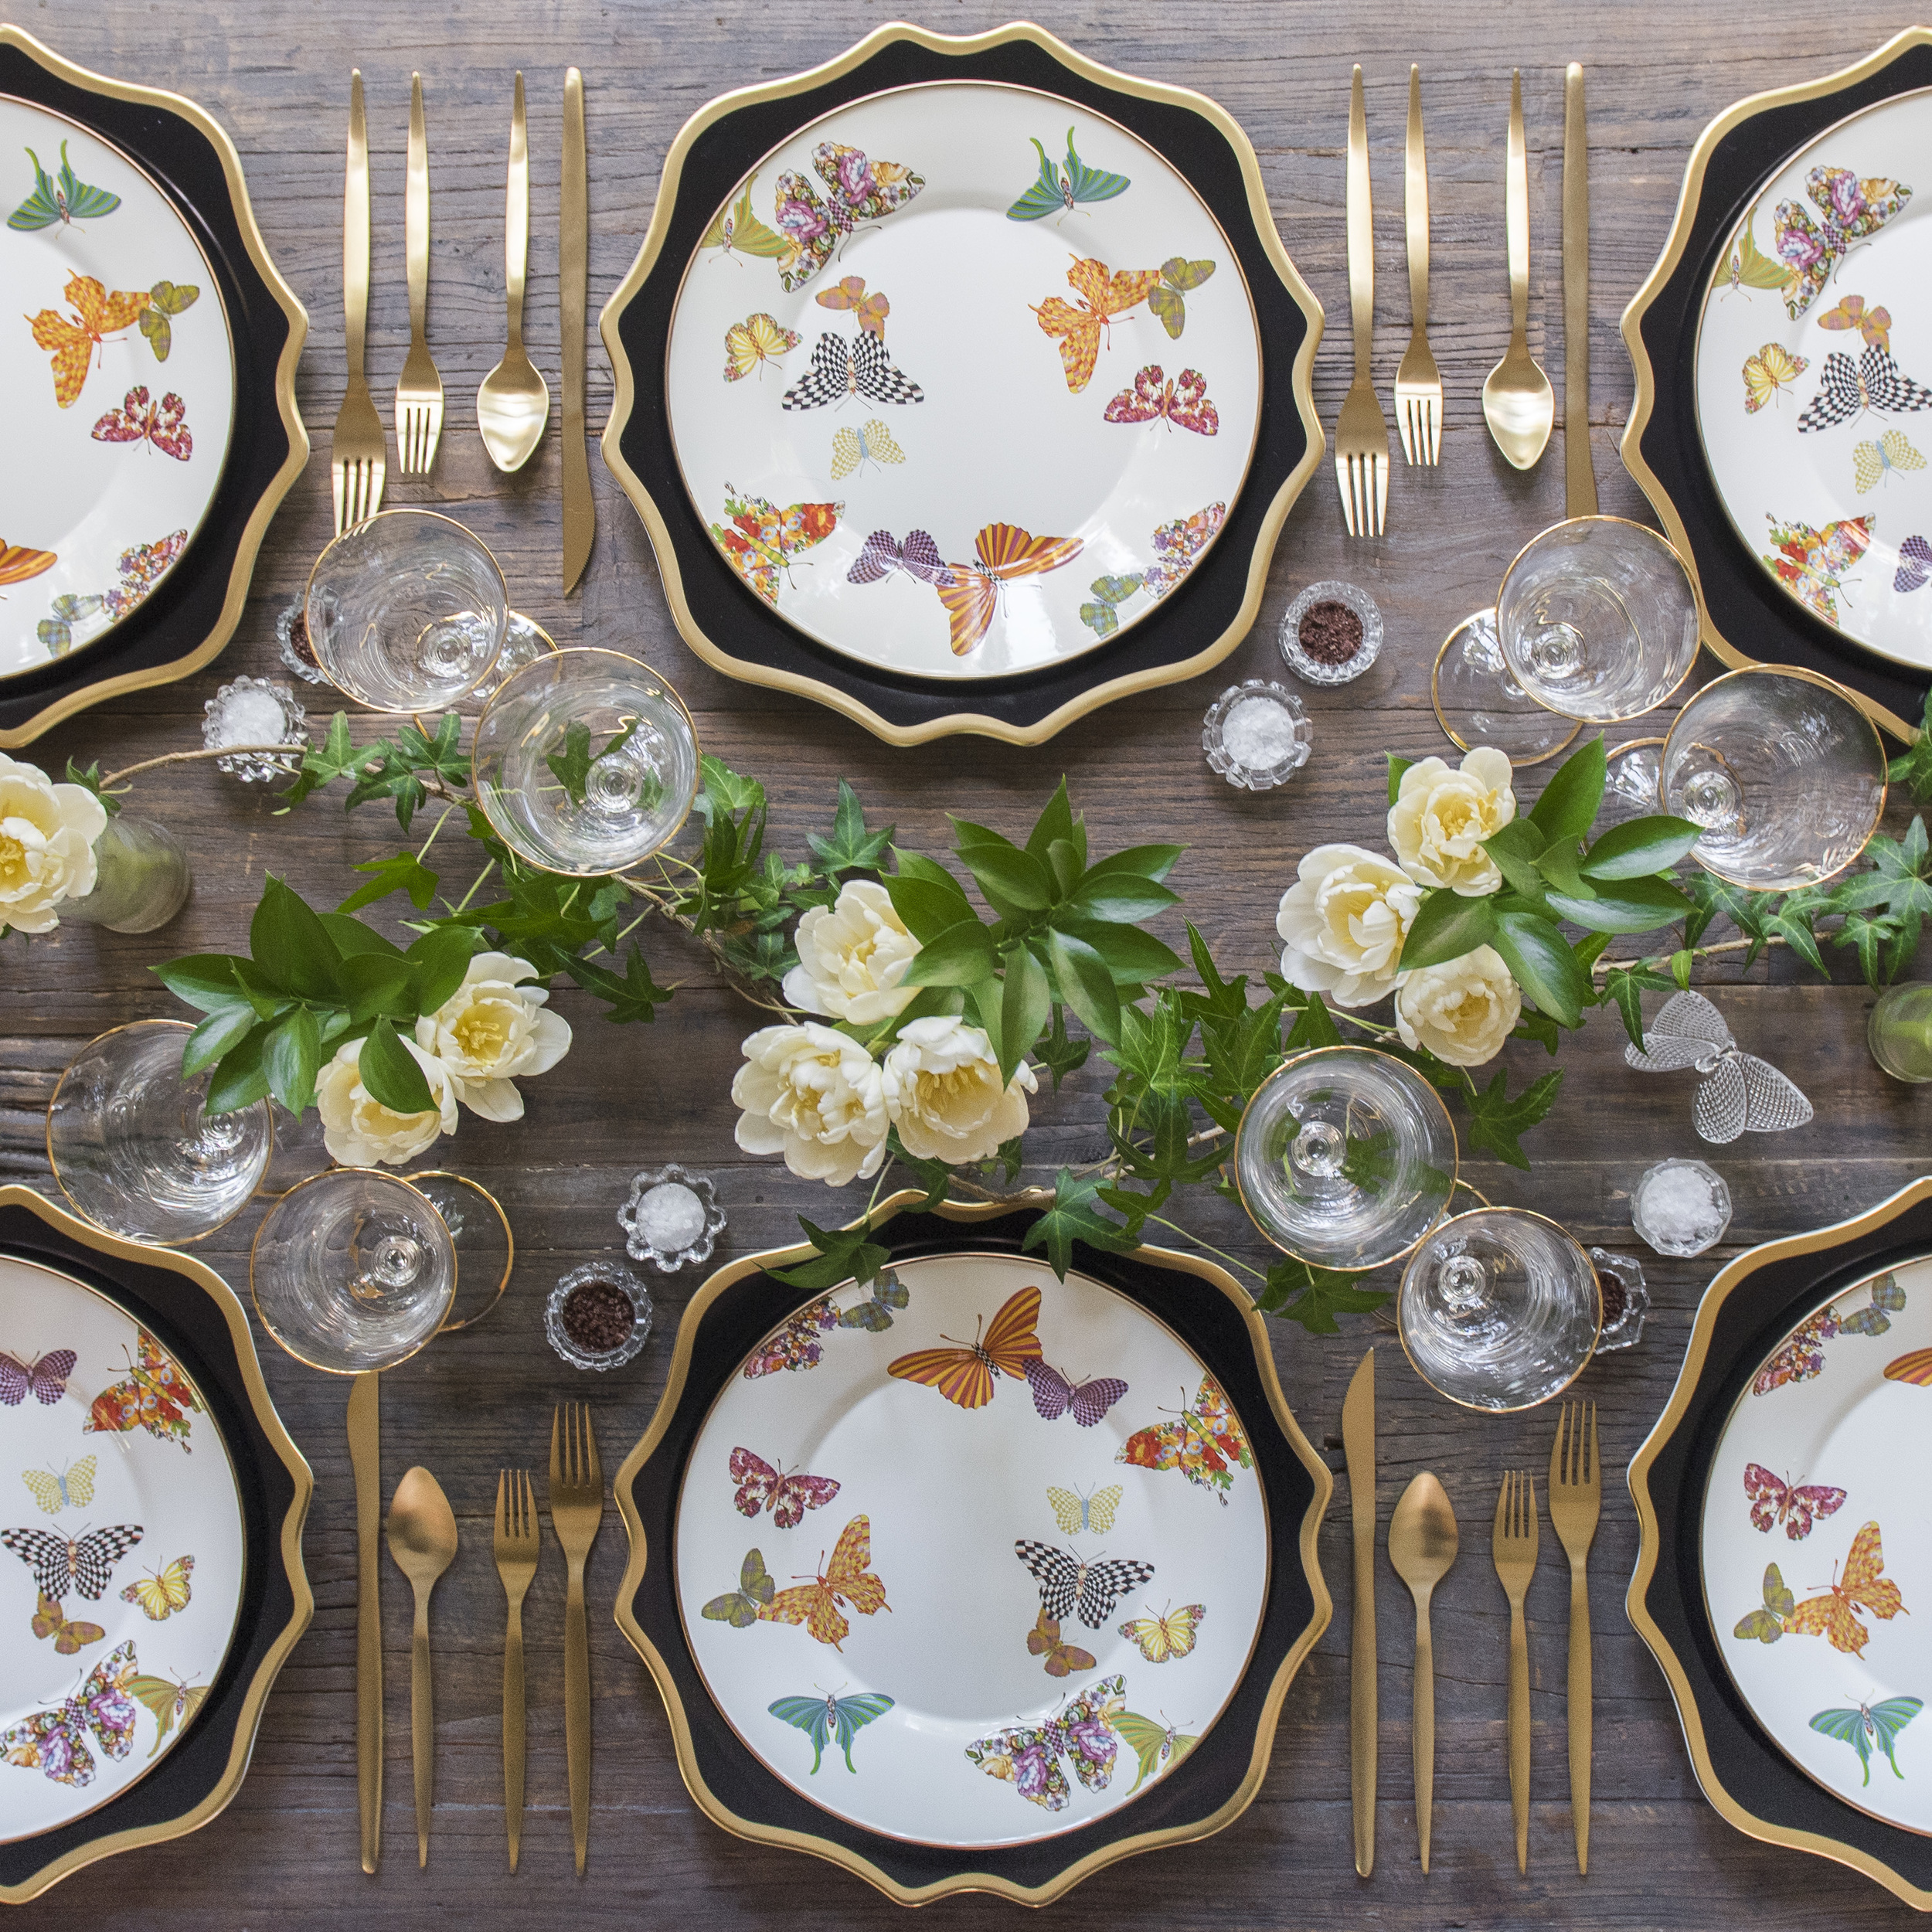 RENT: Anna Weatherley Chargers in Black/Gold + MacKenzie-Childs Butterfly Garden Collection + Celeste Flatware in Matte Gold + Chloe 24k Gold Rimmed Stemware + Antique Crystal Salt Cellars  SHOP: Chloe 24k Gold Rimmed Stemware